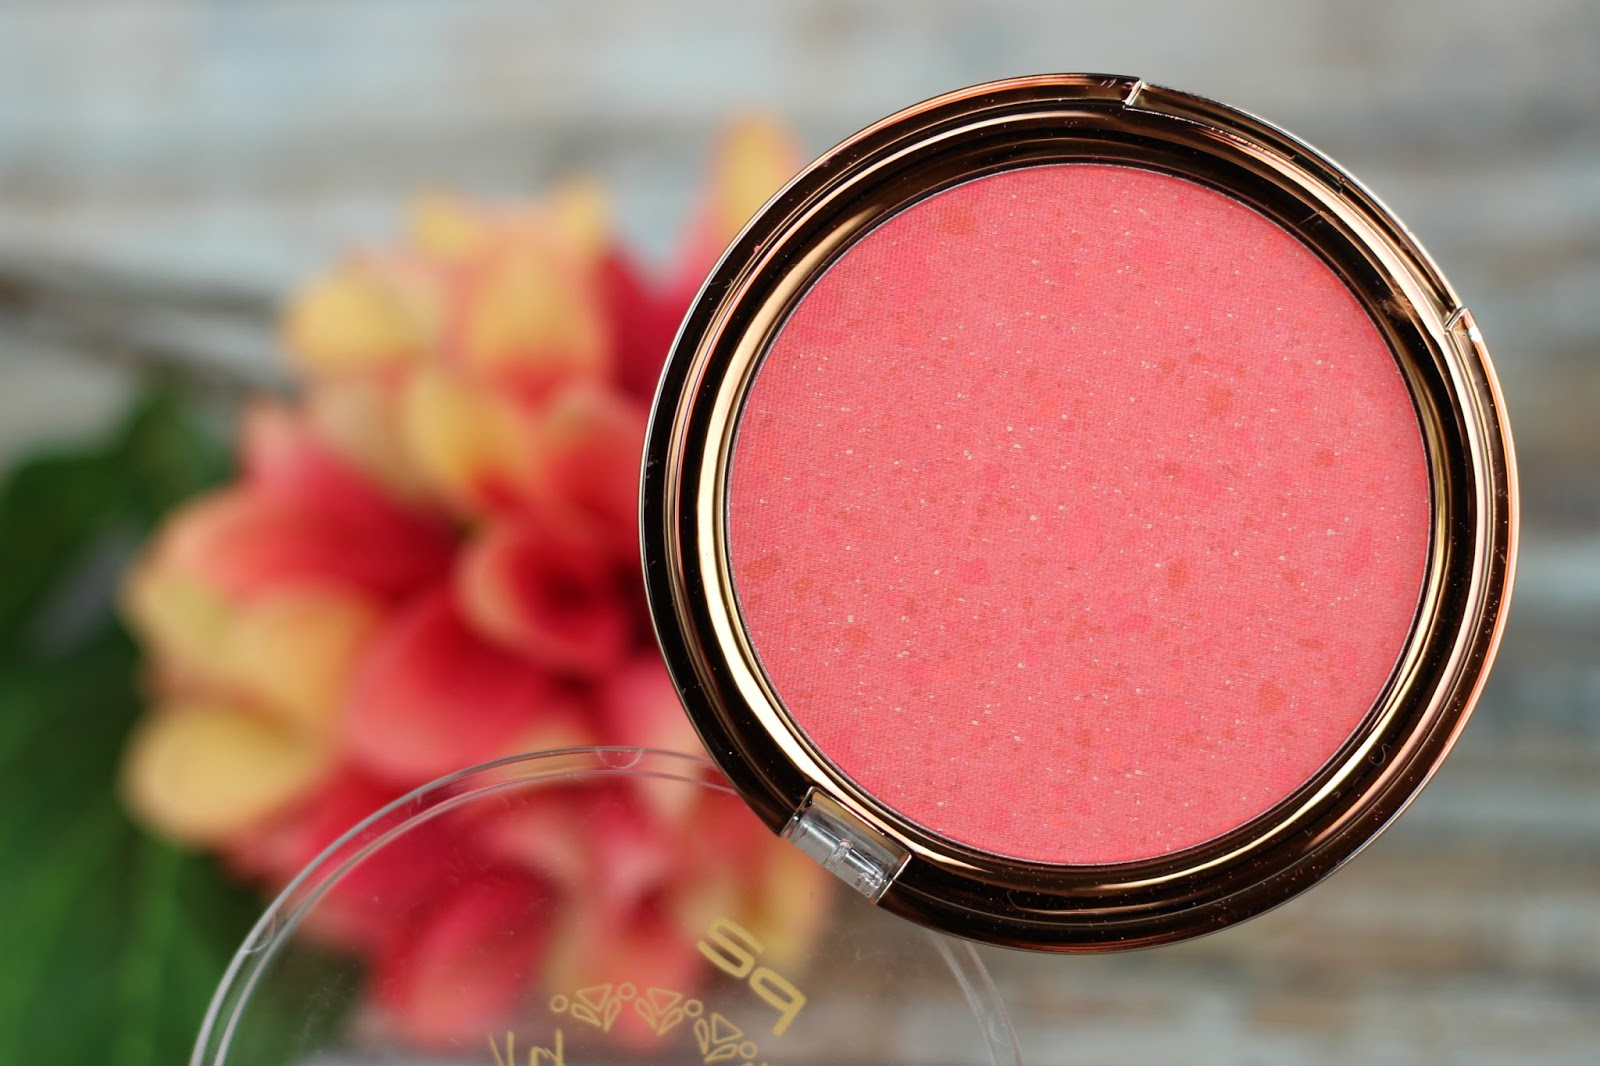 2016, augenbrauen gel, beauty, beauty mosaic blush, beauty voyage, color fusion lipstick, cosmetics, dm drogeriemarkt, drogerie, farbtrends, le, limited edition, nagellack, p2, review, swatches, tragebilder,